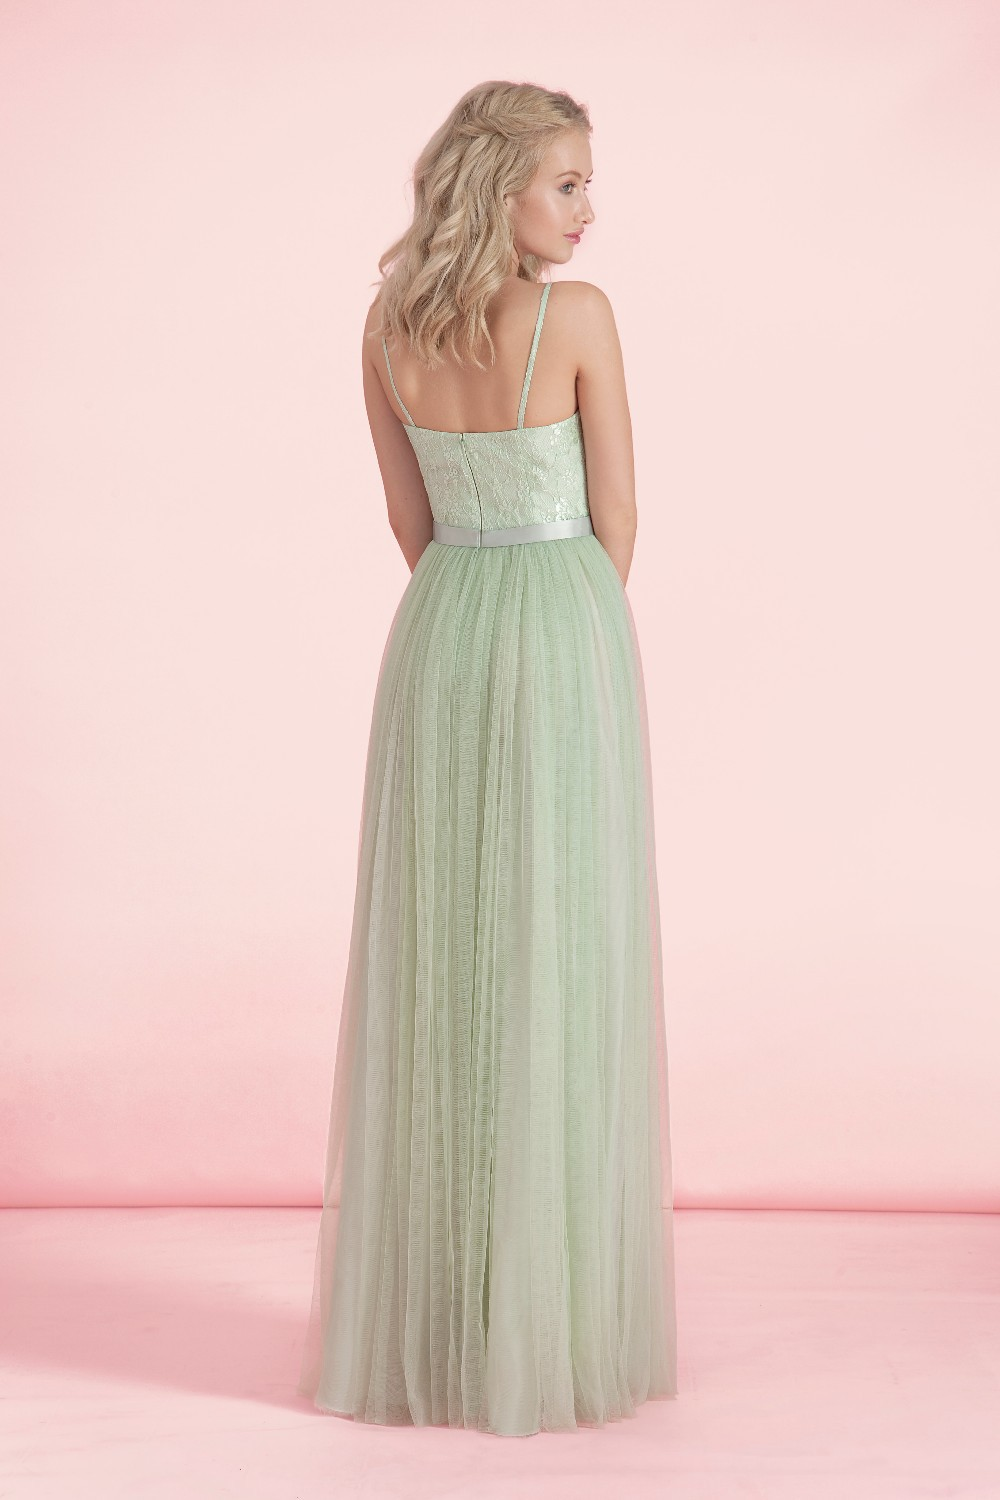 Vestido para madrinha 2017 new lace a line mint green bridesmaid vestido para madrinha 2017 new lace a line mint green bridesmaid dress long plus size robe demoiselle dhonneur in bridesmaid dresses from weddings events ombrellifo Gallery